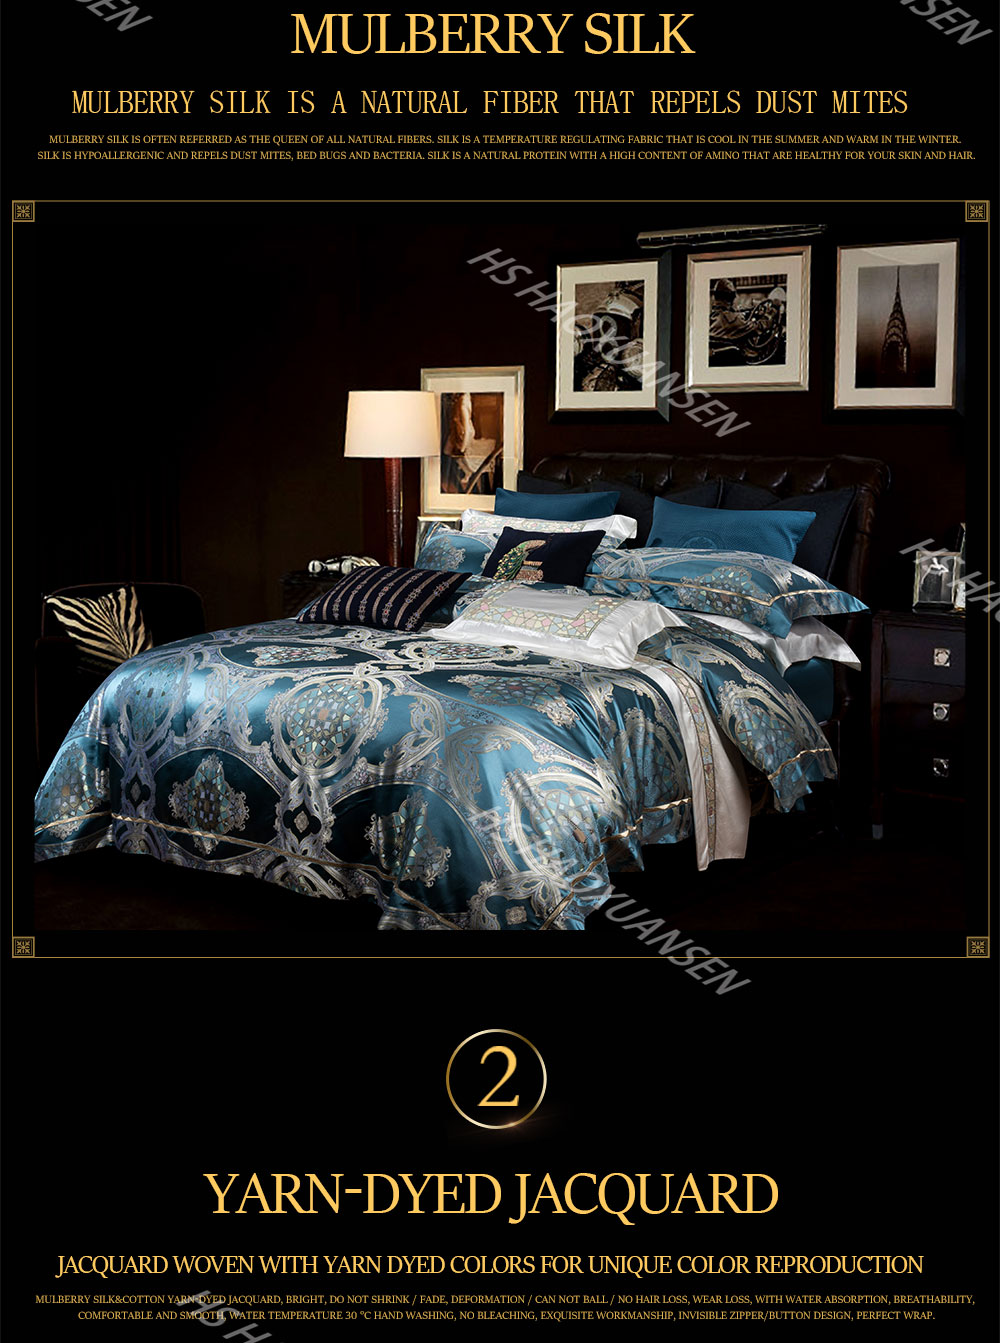 Bedding Steady 4pcs Pink Luxury Bedding Set Full Queen King Size Wedding Bed Cotton Bed Sheets Duvet Cover Set Bedspreads Bright Luster